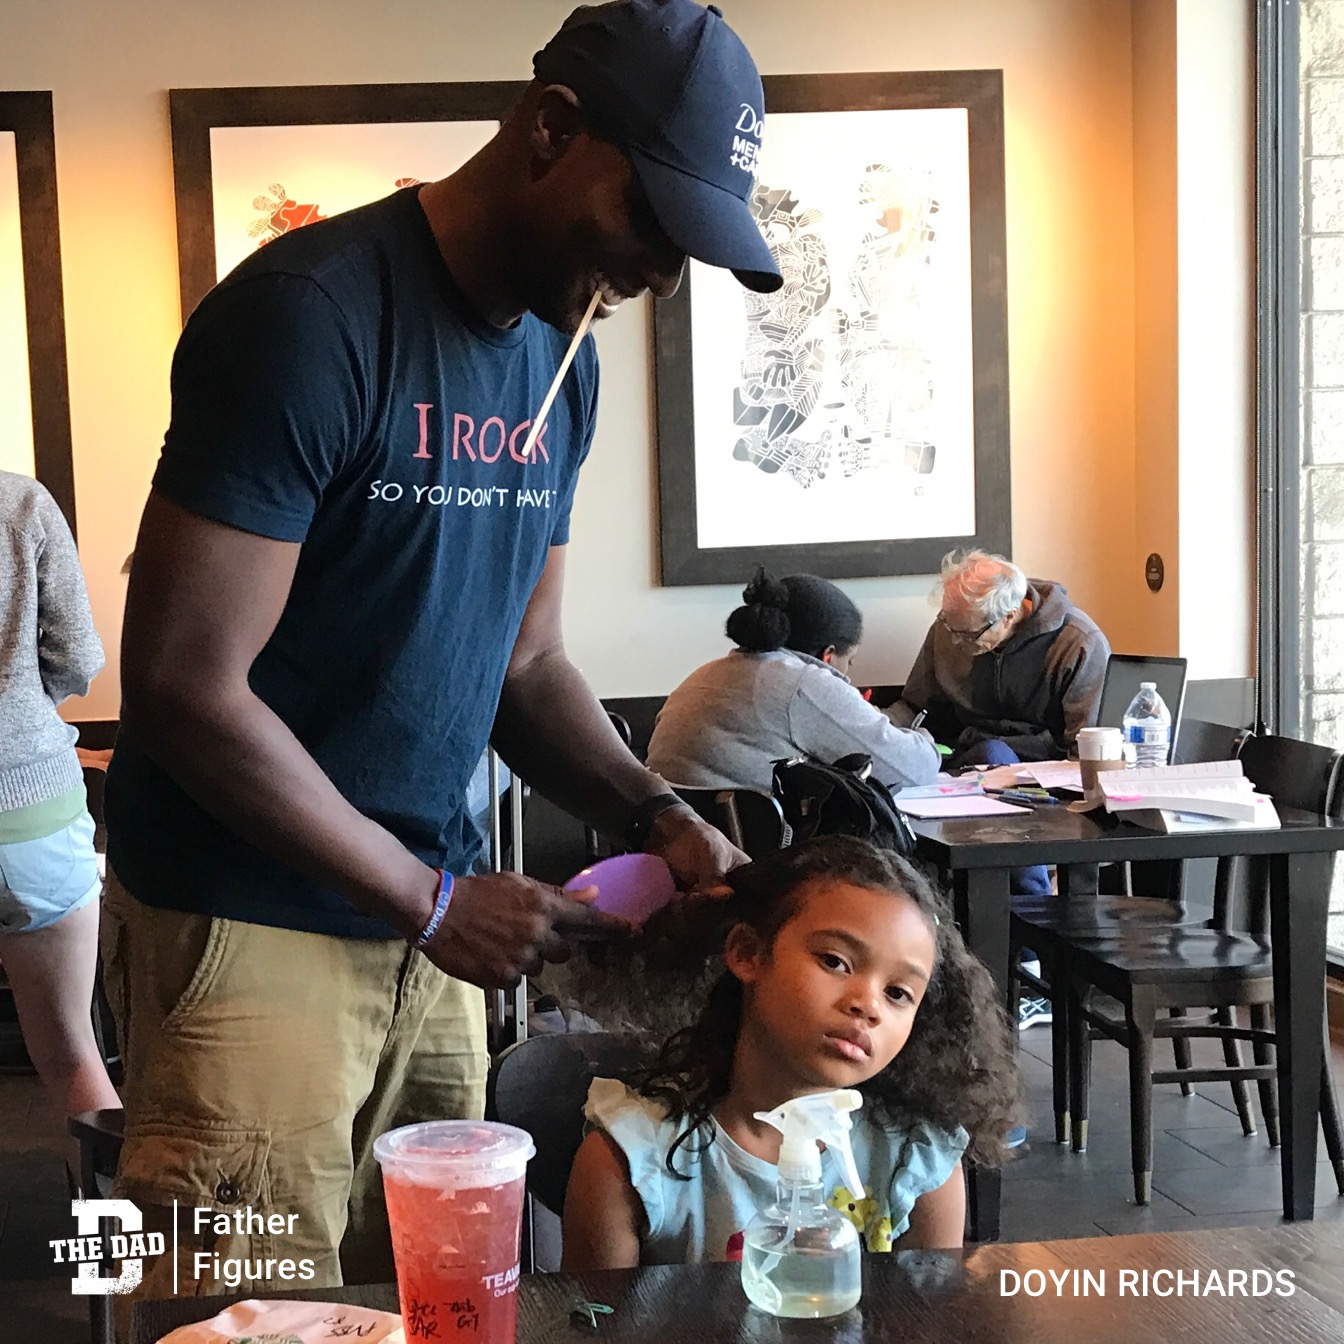 Father Figures: Hairstylist Dad